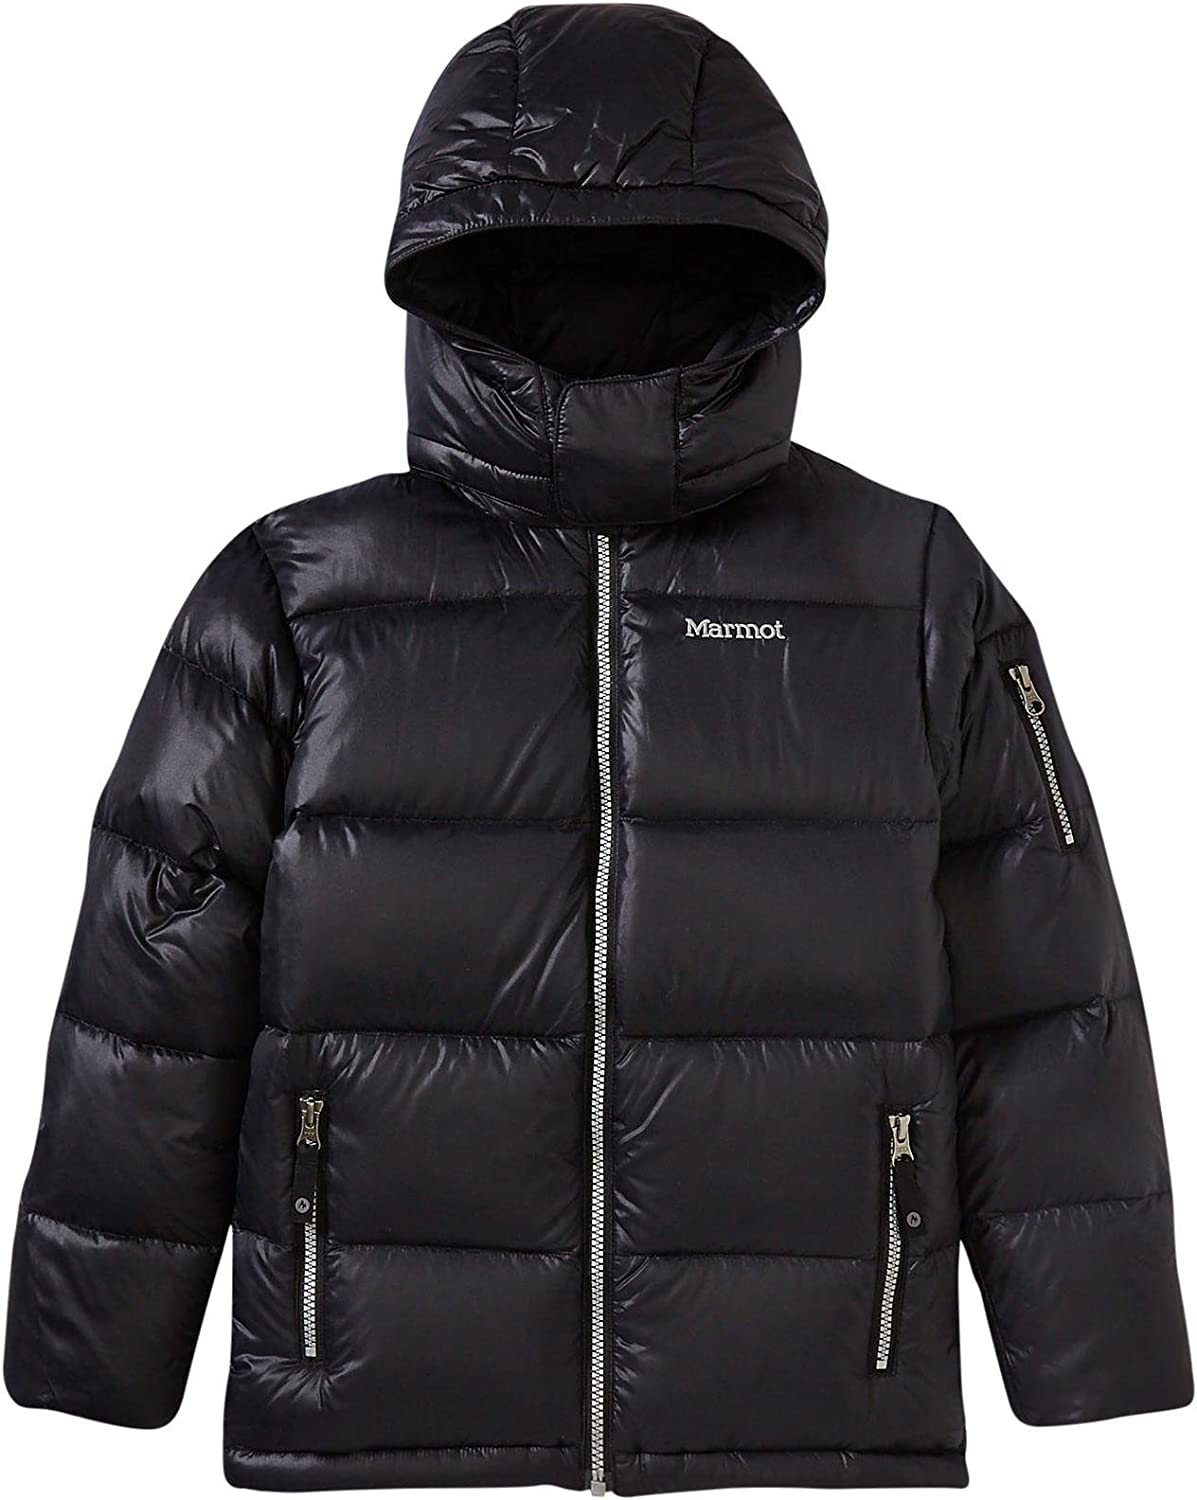 Marmot Max 47% OFF Boy's Jacket Stockholm Dealing full price reduction